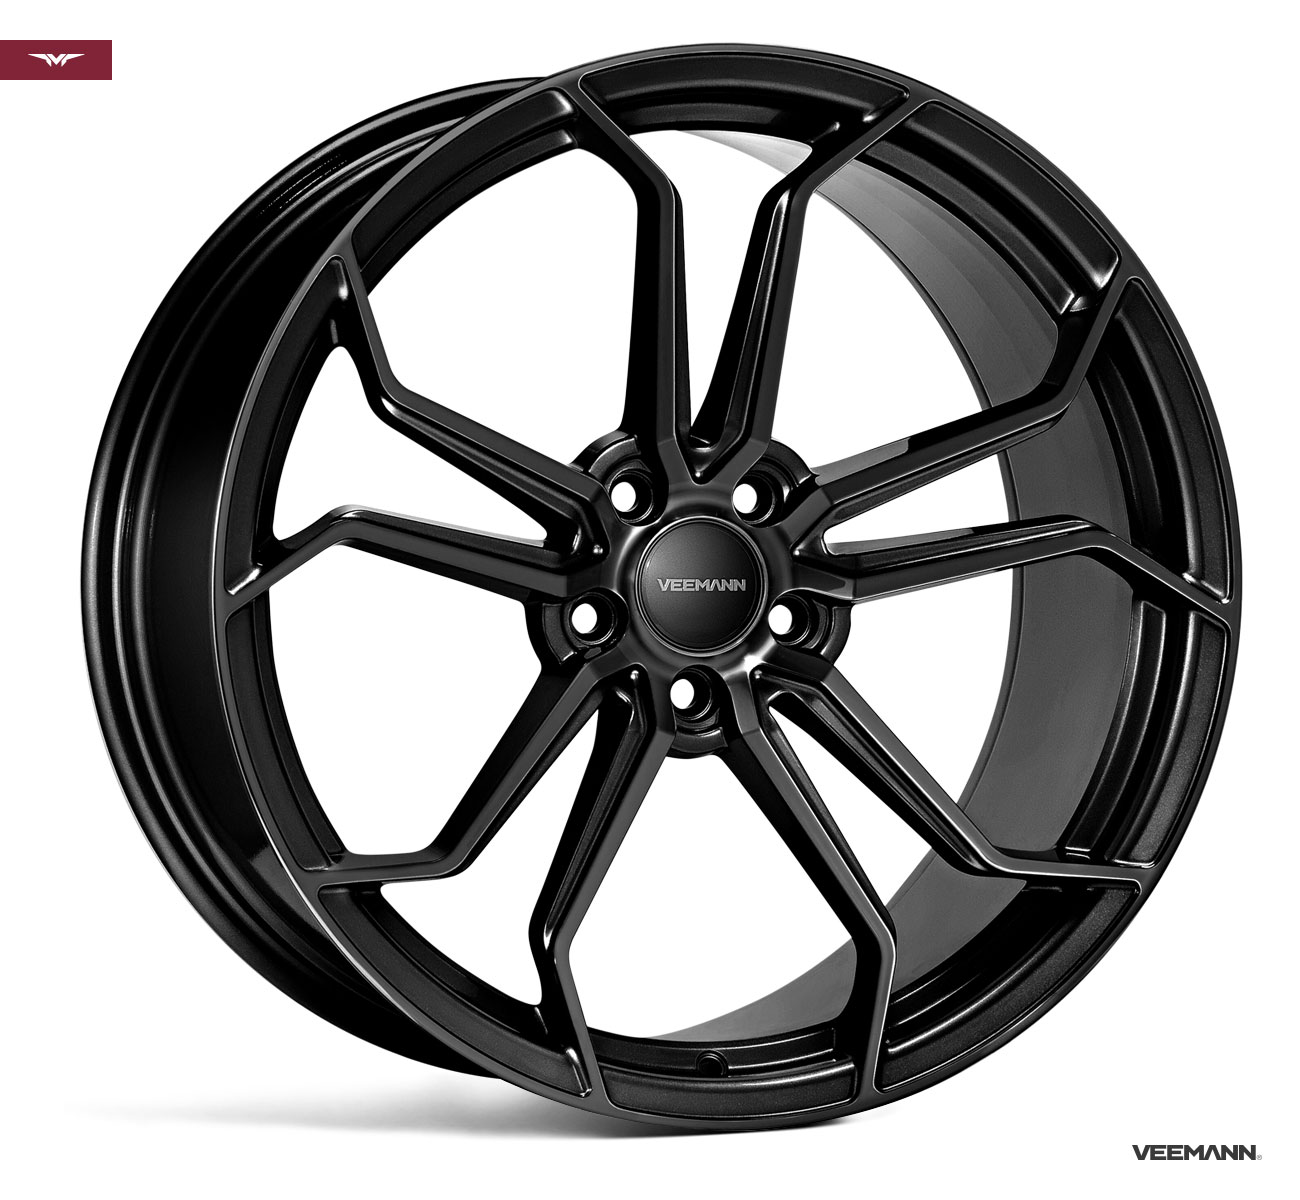 "NEW 19"" VEEMANN VC632 ALLOY WHEELS IN GLOSS BLACK WITH WIDER 9.5"" REAR"